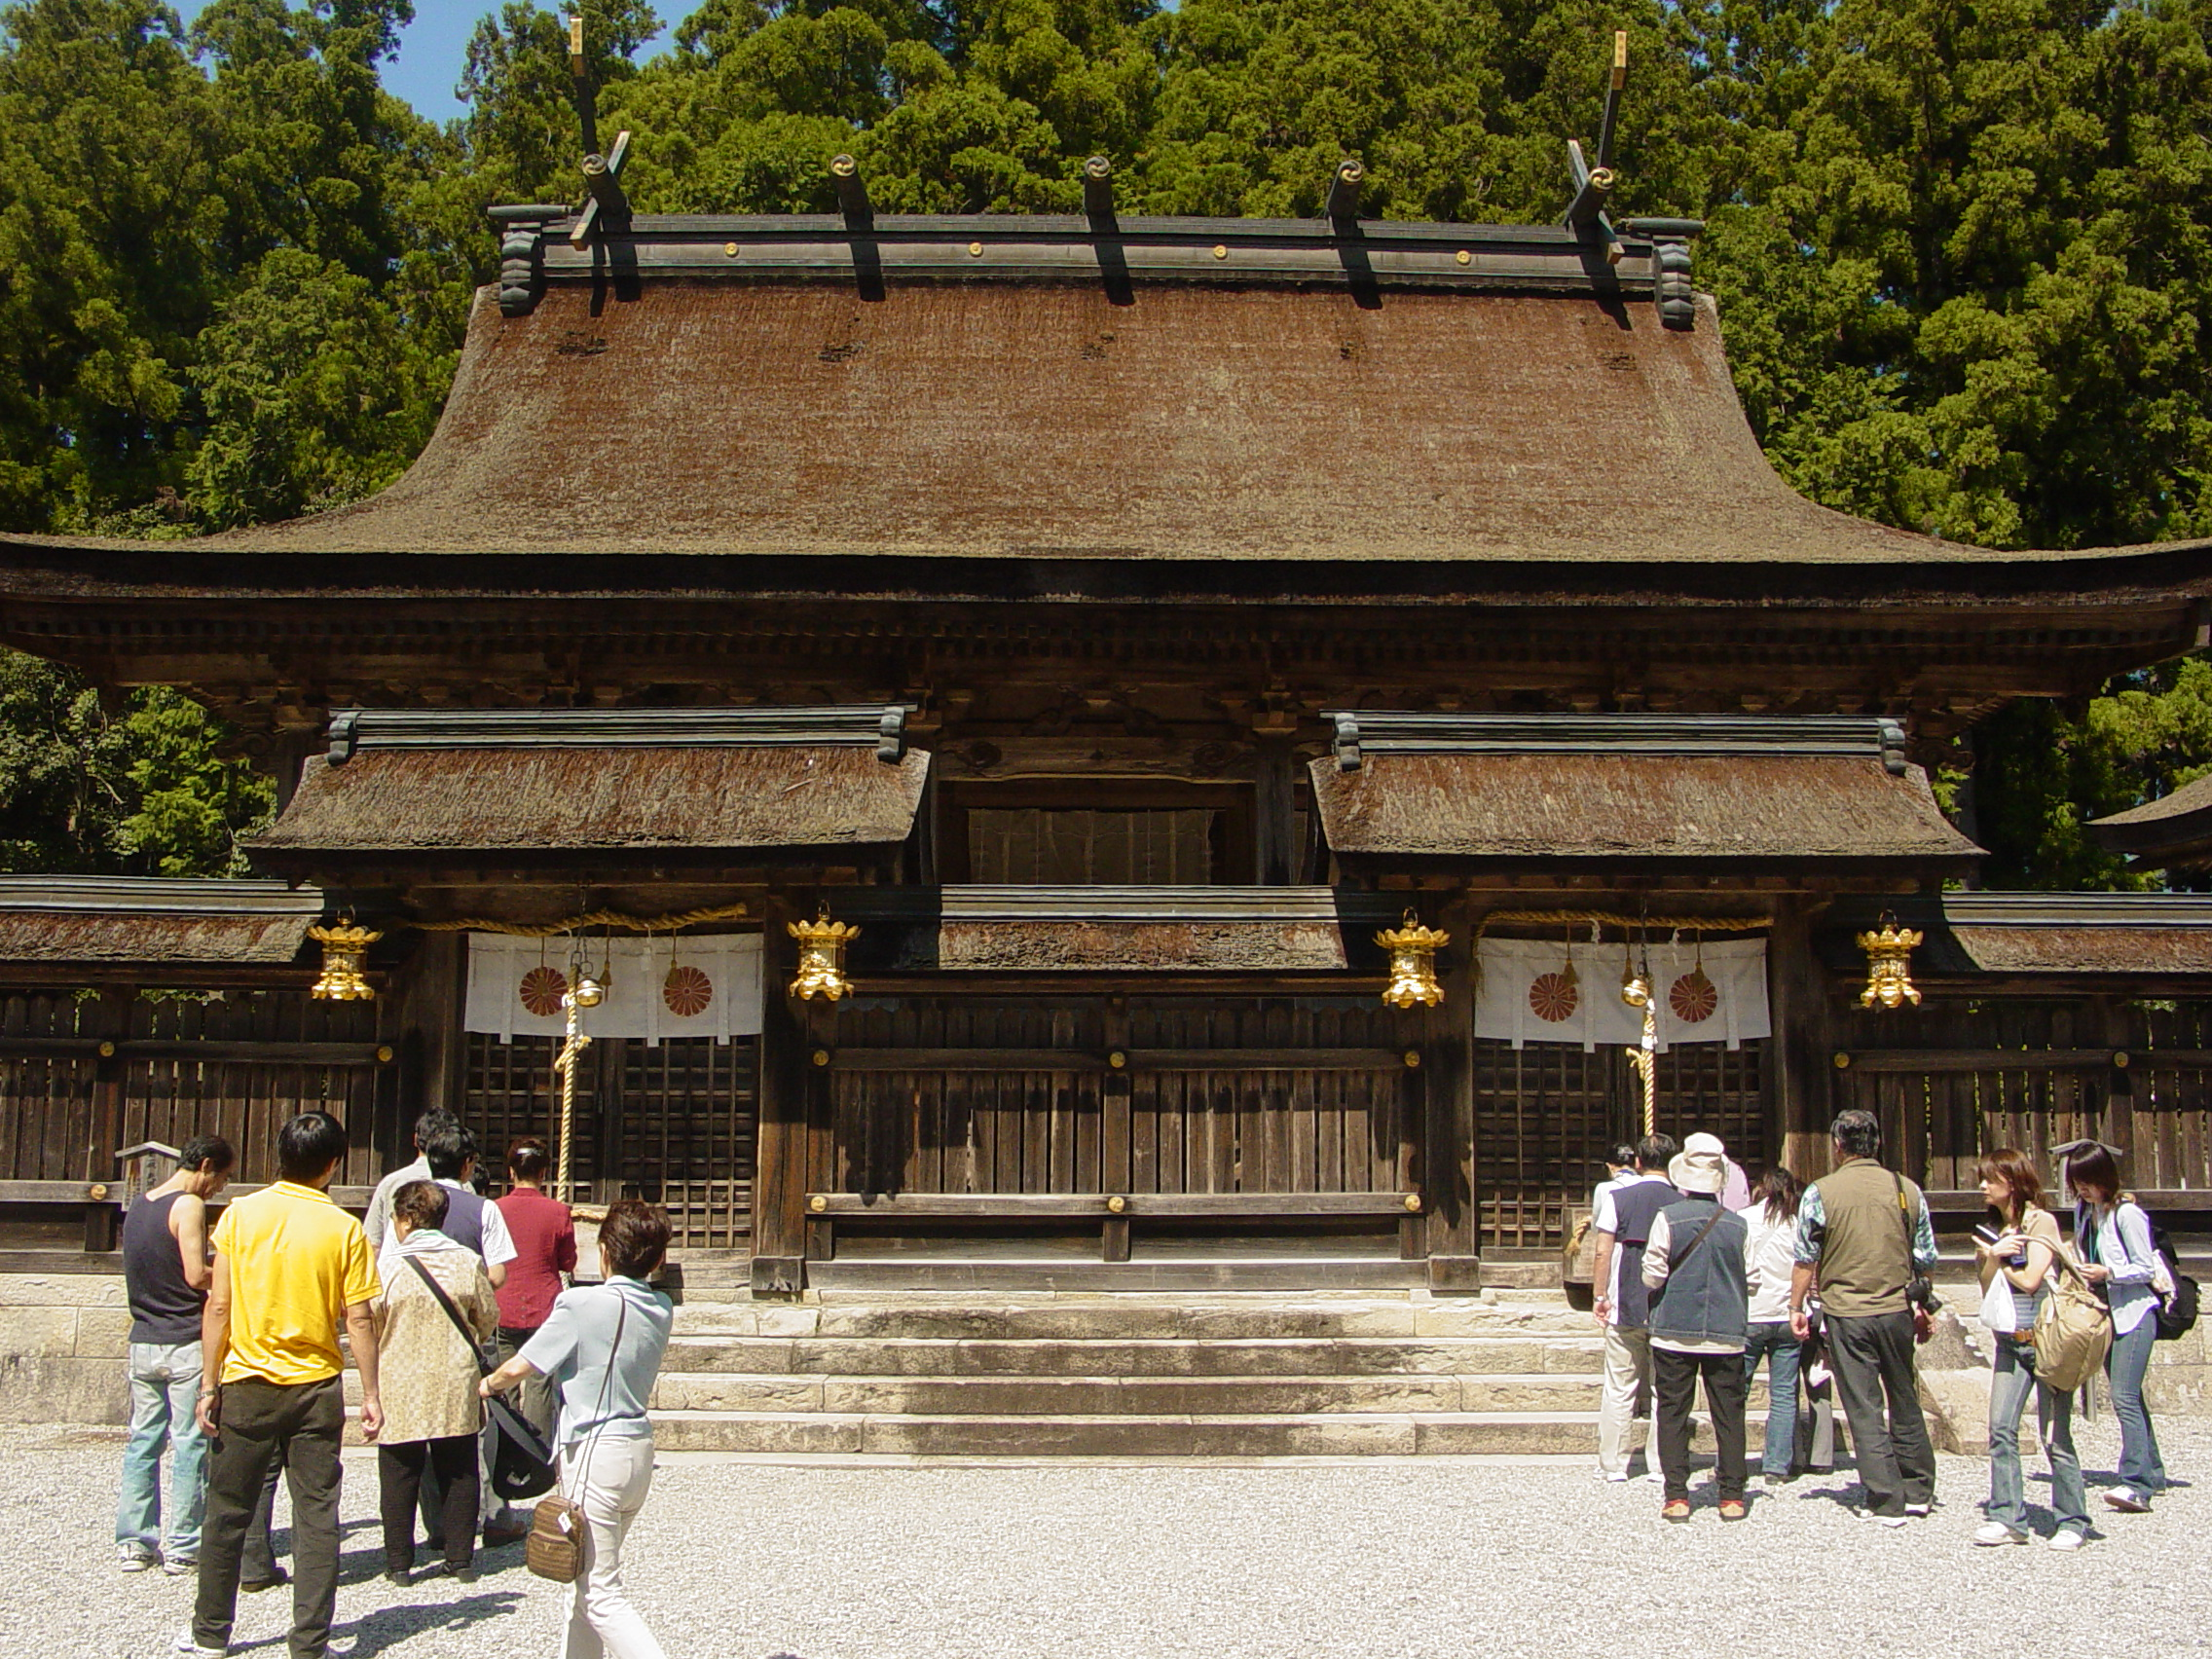 Inside the kumano hongu taisha